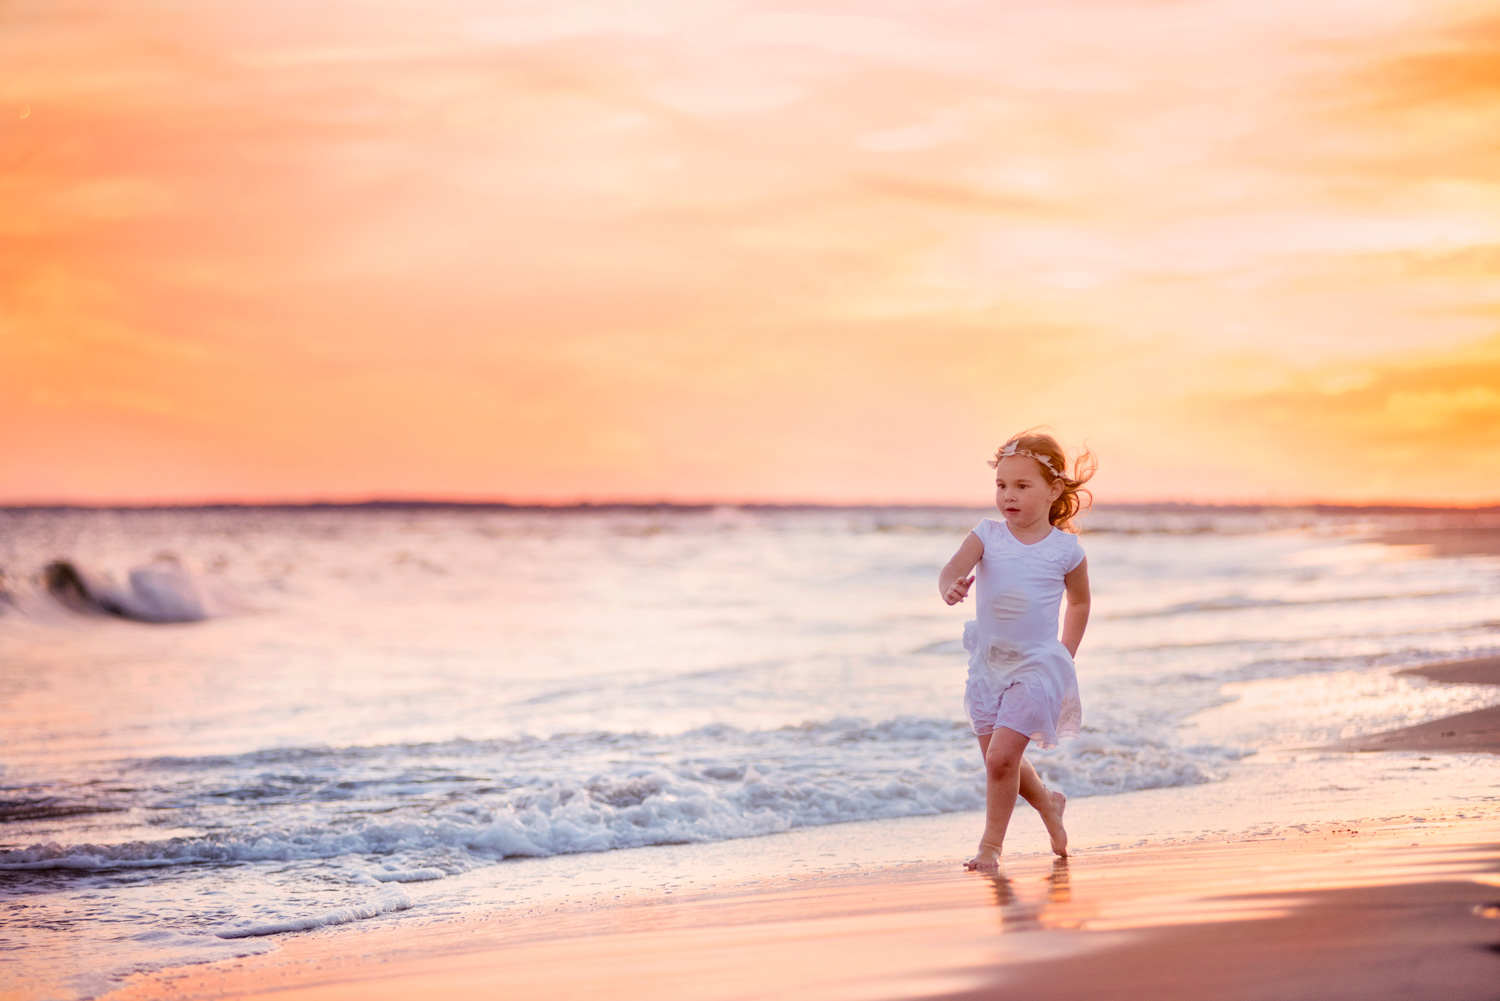 Girl running on the beach during sunset during a fun and relaxed photo session at Coney Island Beach